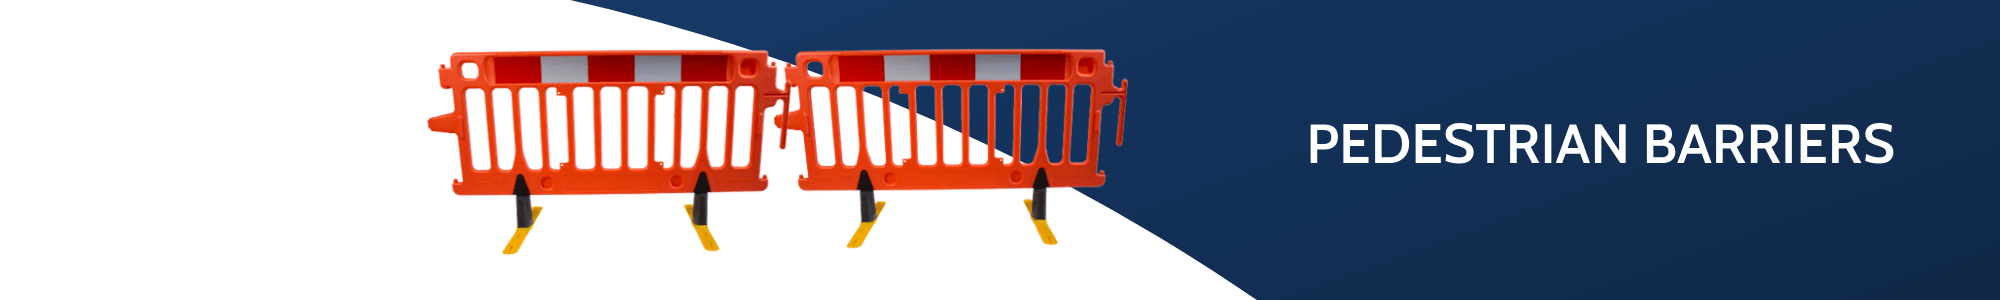 Pedestrian Barriers from Ramp Champ